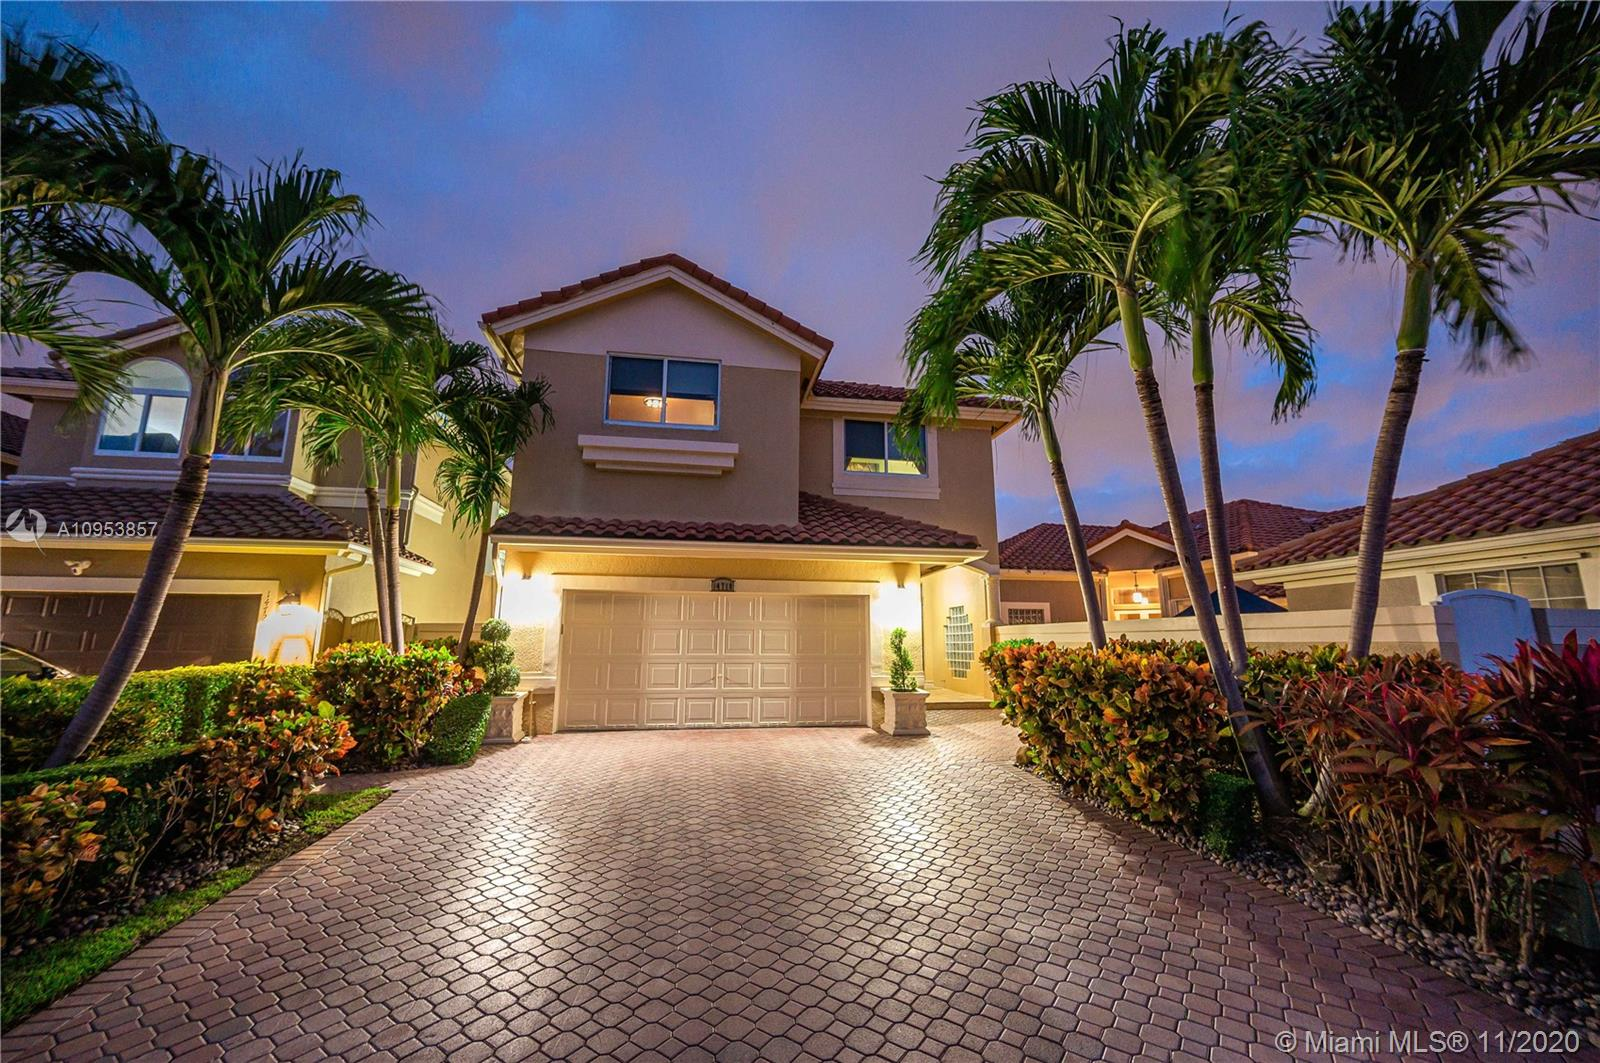 Details for 14718 132nd Ave, Miami, FL 33186